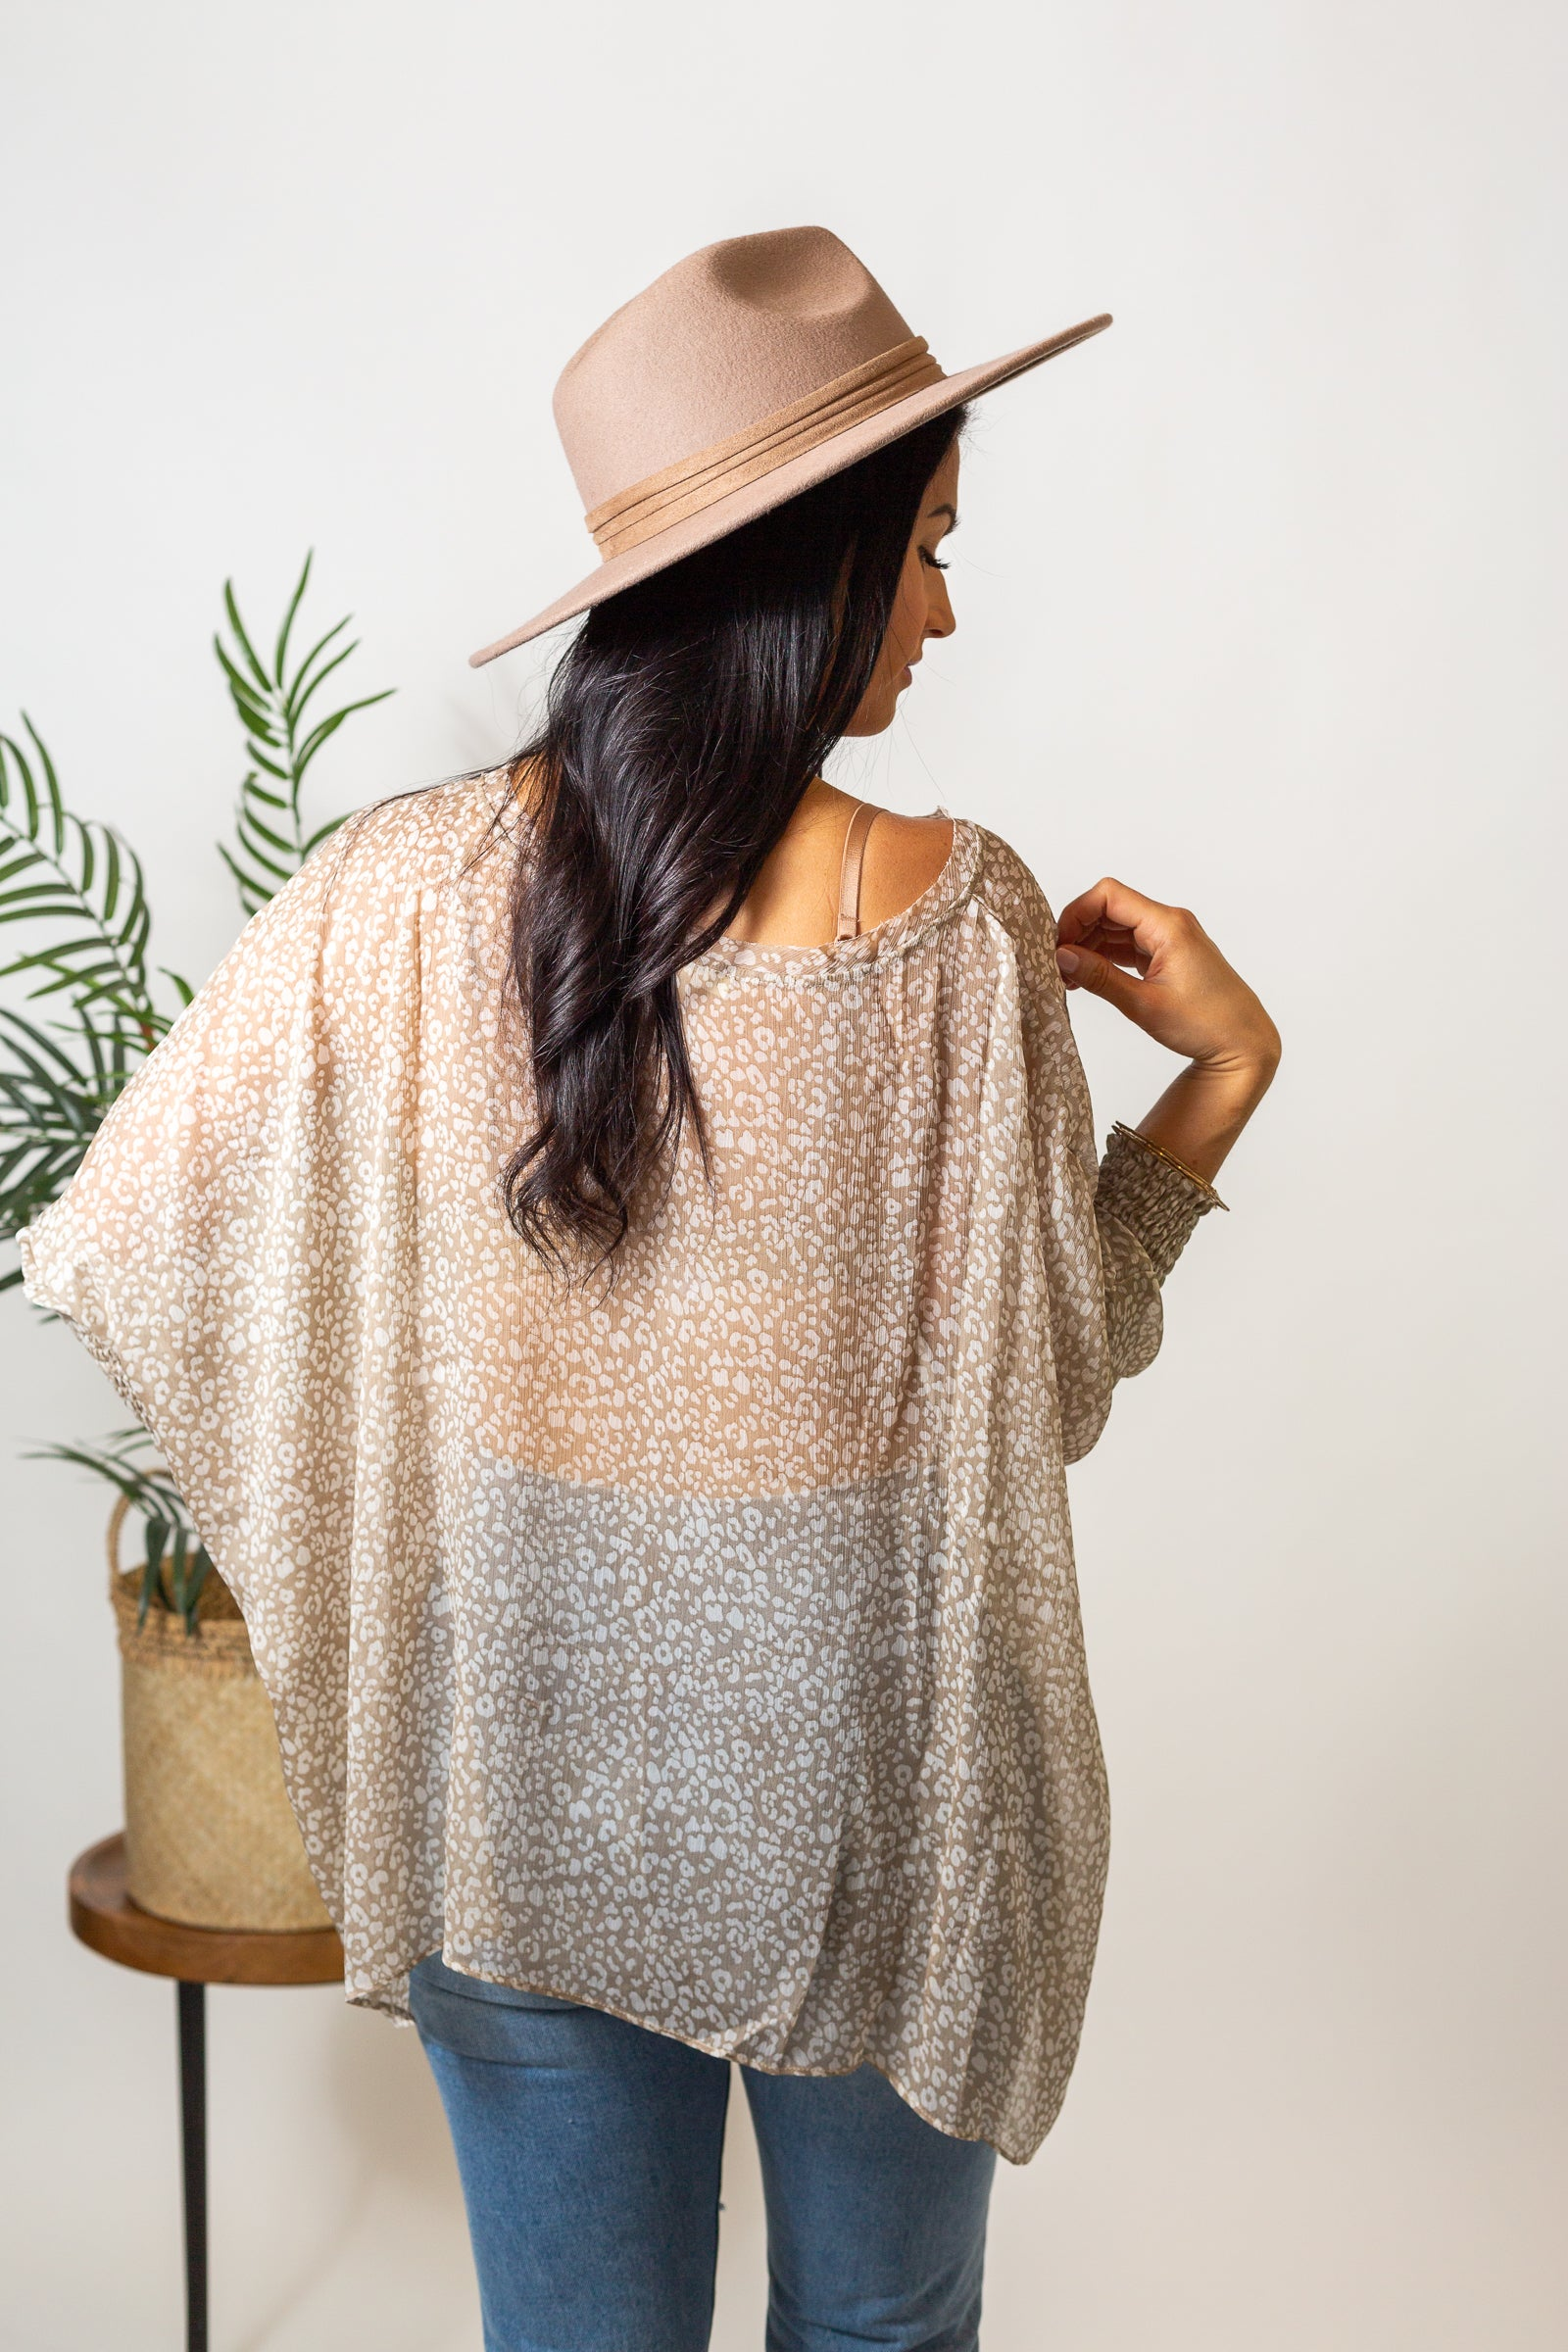 White leopard prints cover the fabric of this lightweight autumn top. Mid-length smocked cuff sleeves attach to a u-neckline on an oversized and sheer tunic bodice.